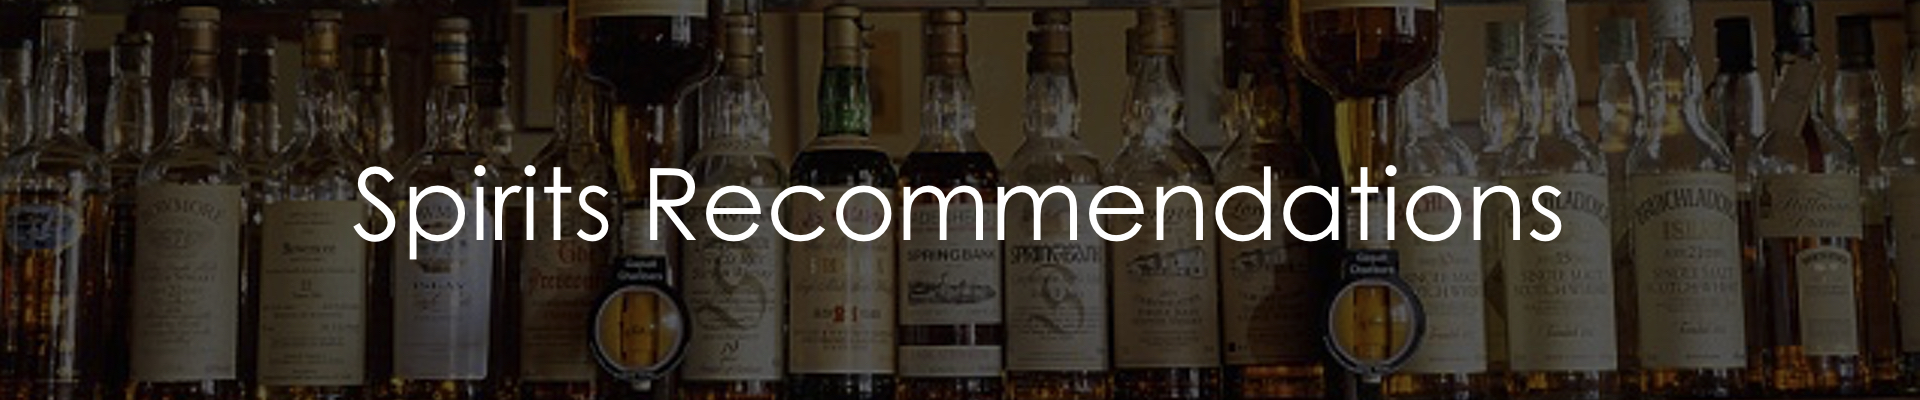 behind-the-wood-spirits-consulting